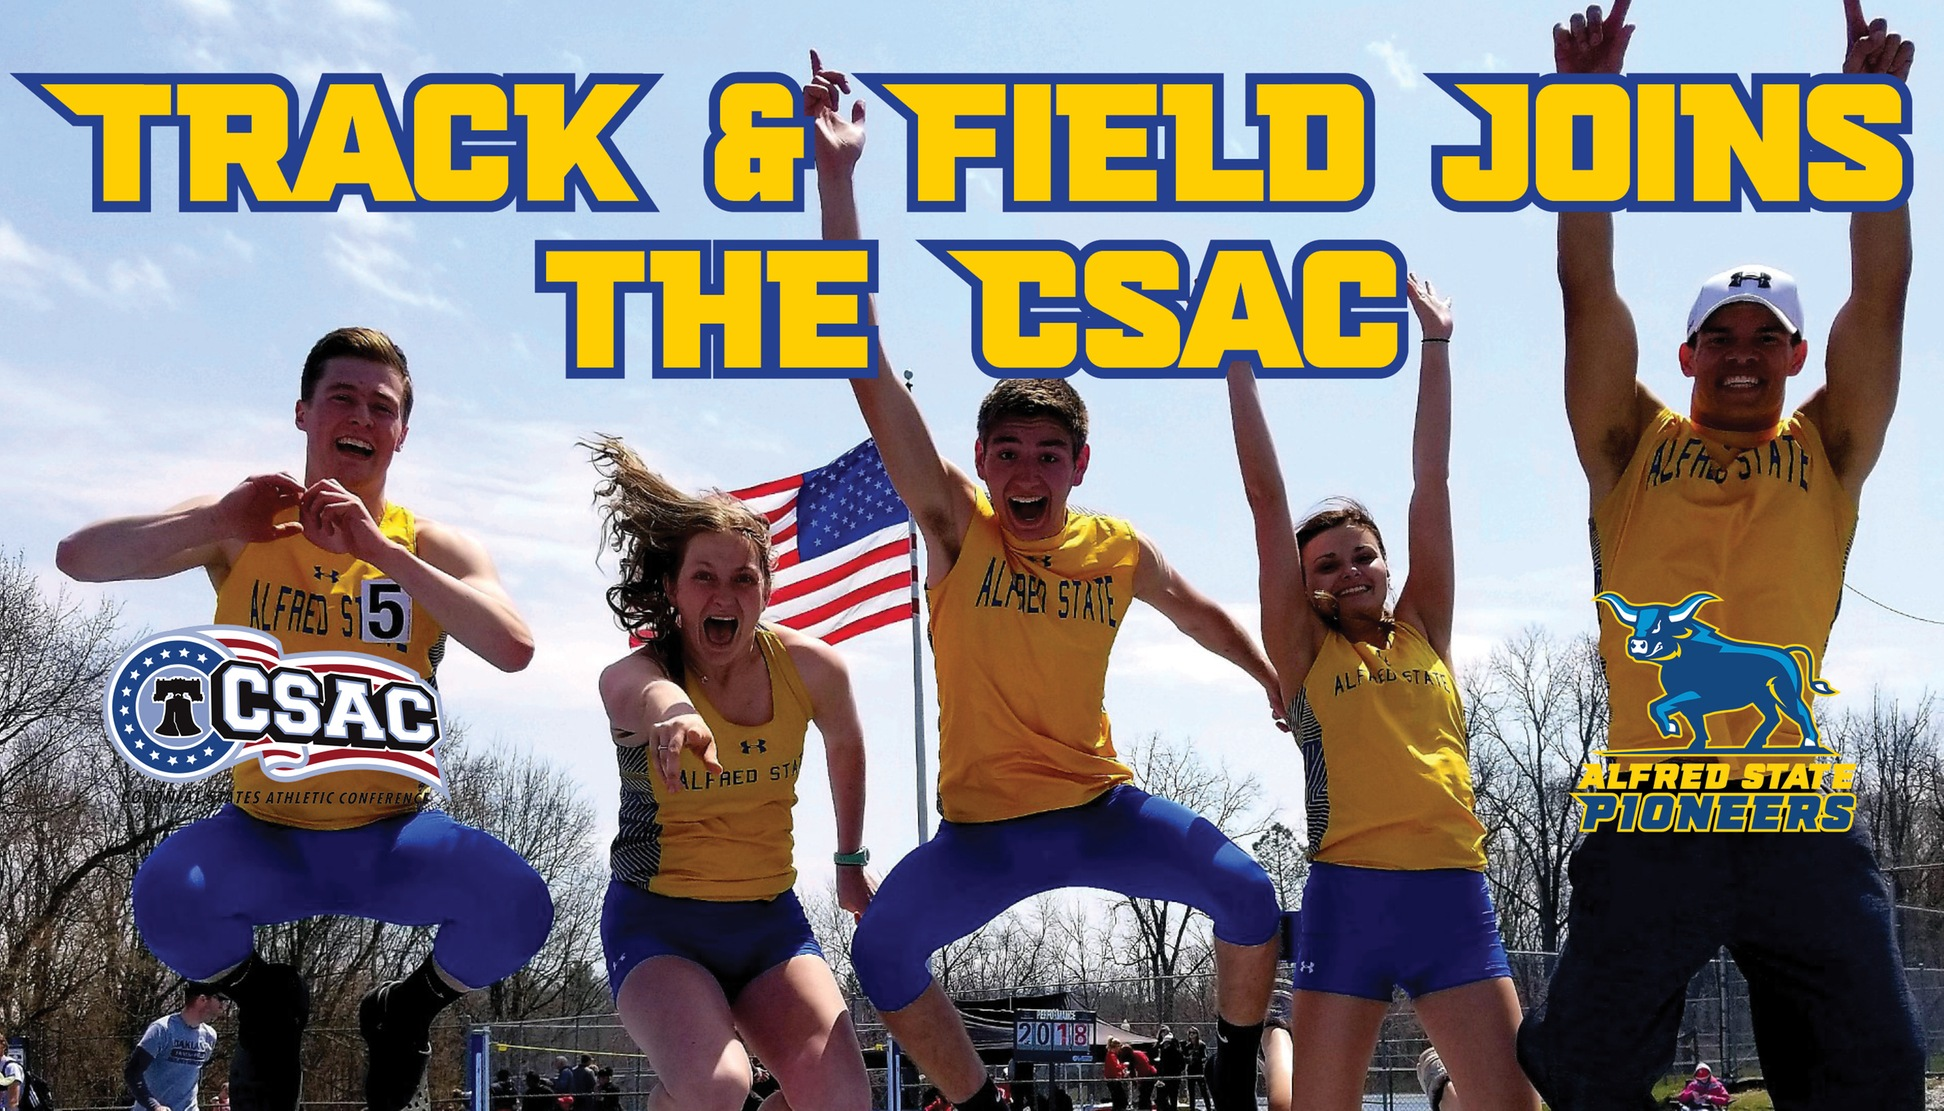 Track & Field joins the CSAC